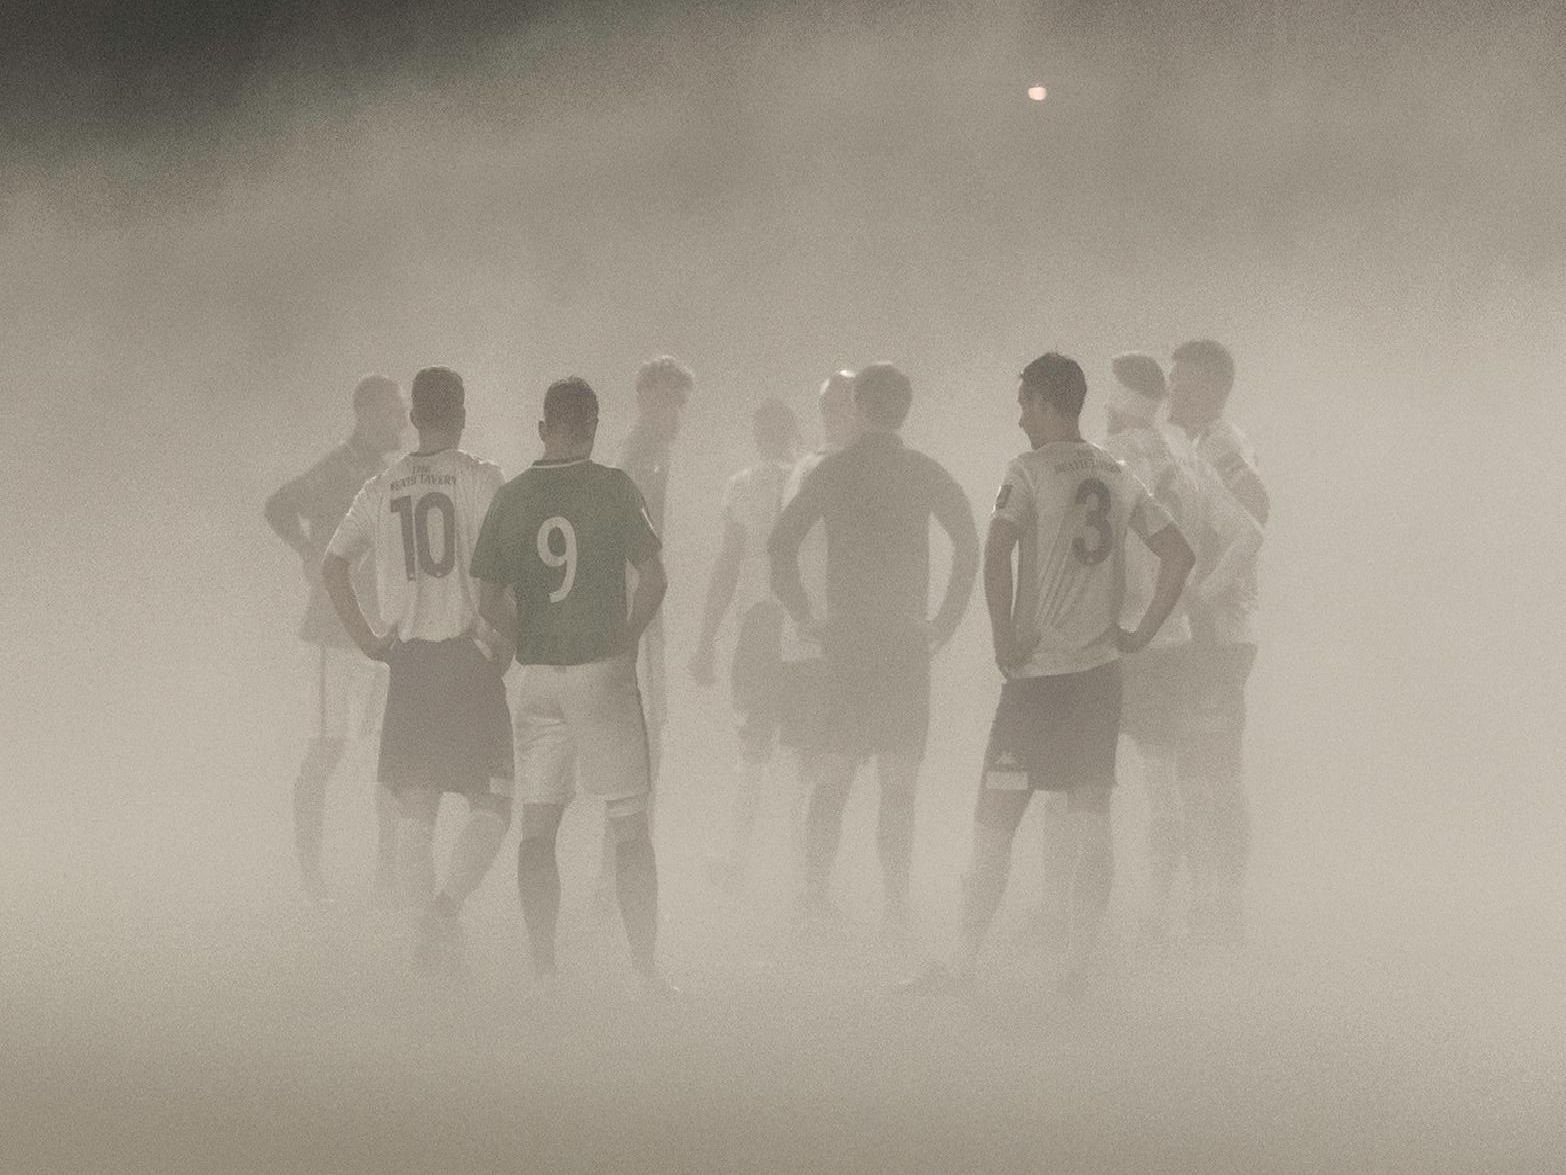 The players wait for the mist to clear. Chris Neal